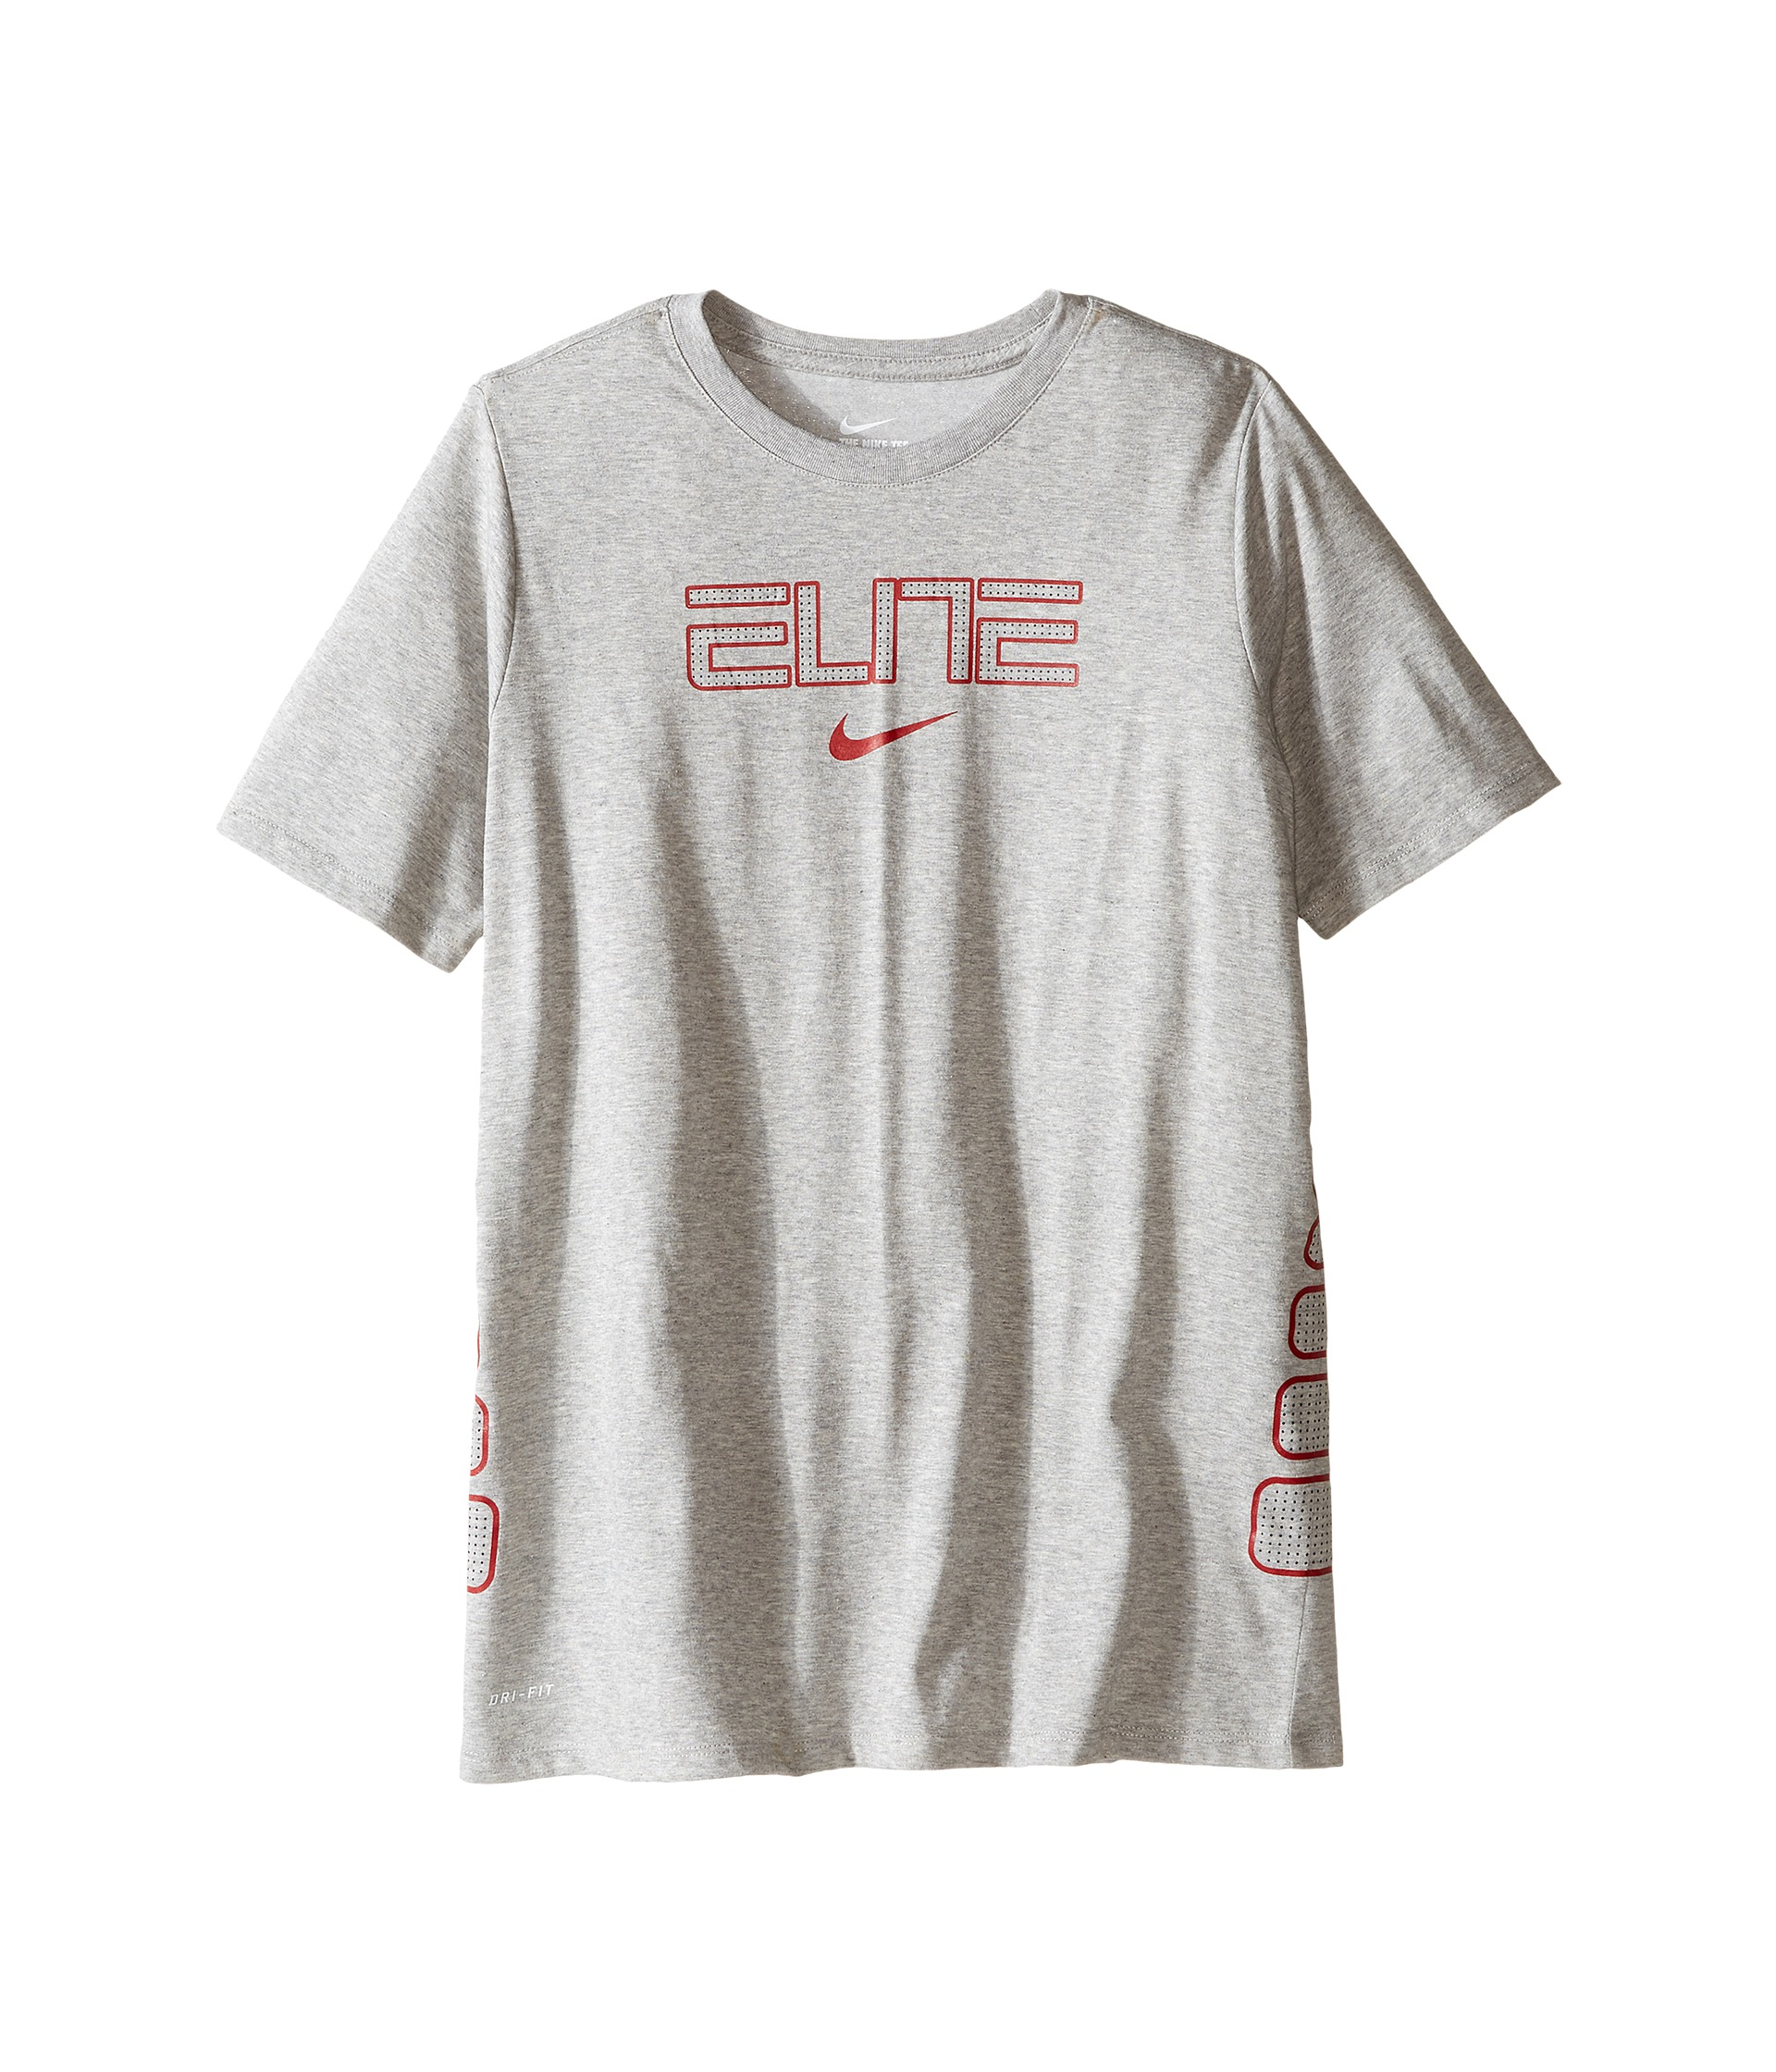 Nike T Shirts For Kids